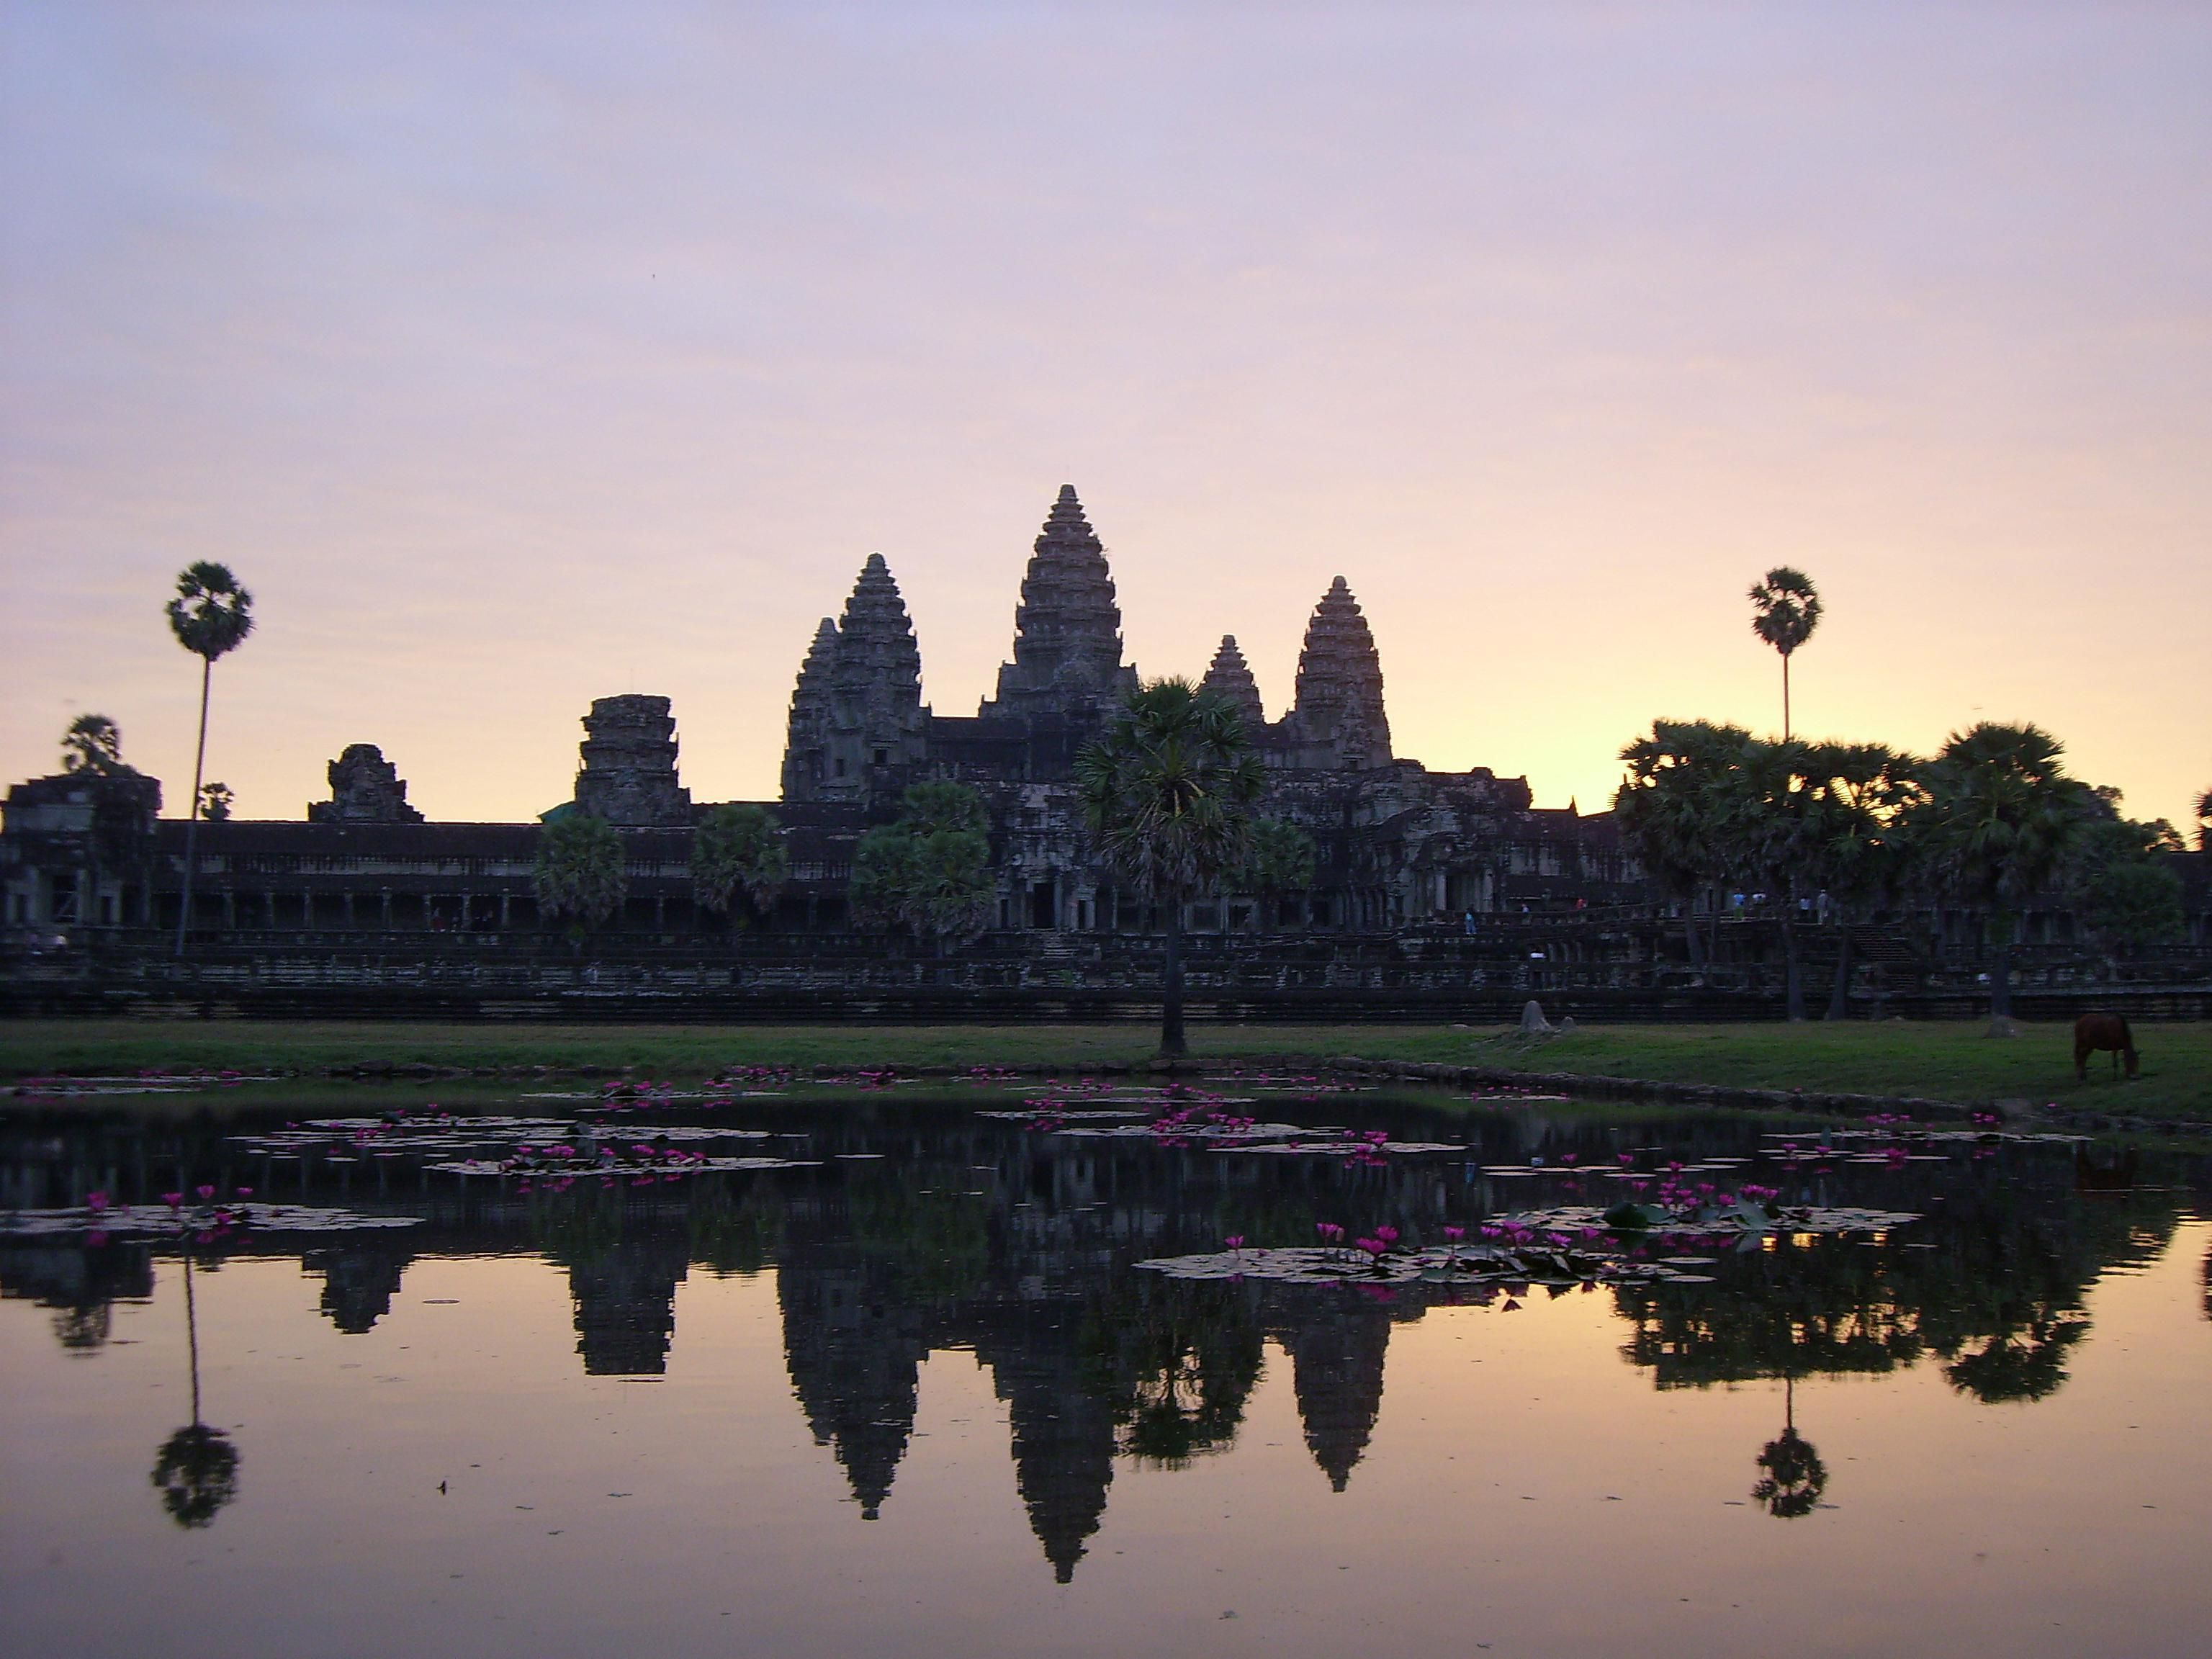 french colonization of cambodia During the colonial era nearly half a million other vietnamese, mostly farmers, fisherpeople, and artisans, emigrated to cambodia, encouraged by the french authorities, who considered them more vigorous than the cambodians as a race.